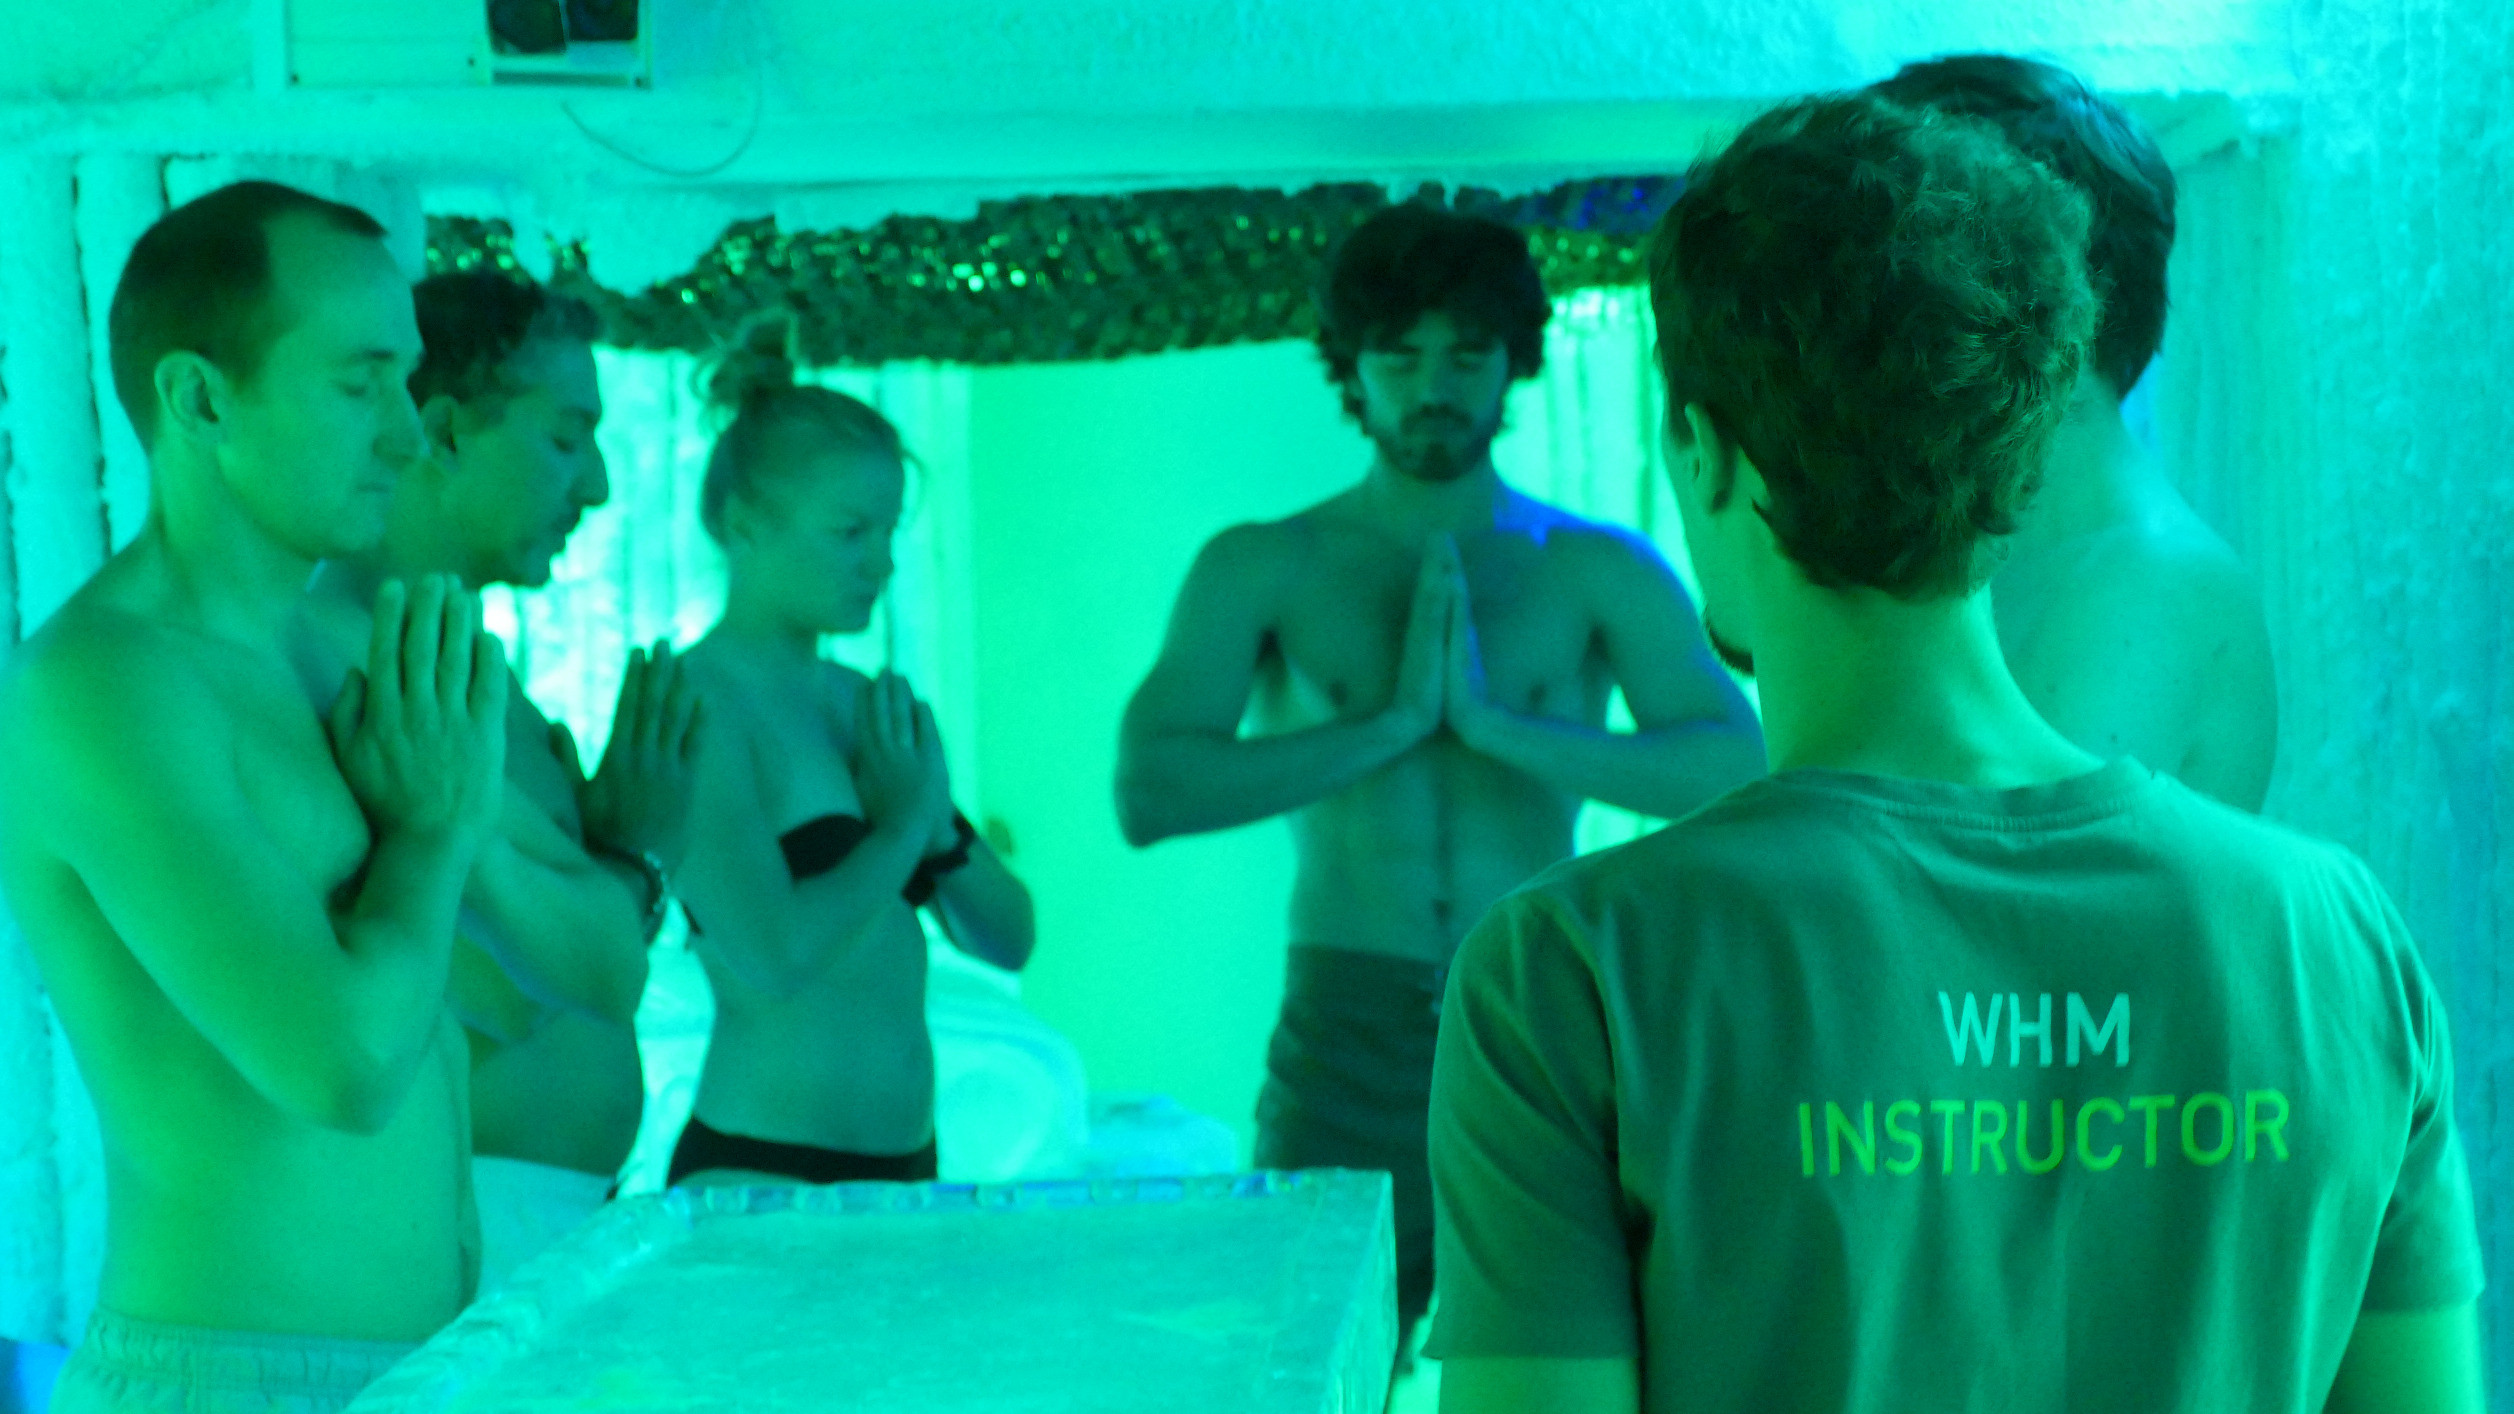 Image 15 of 15 - Experience Yoga to get an impression of WHM Fundamentals Workshop at Paris